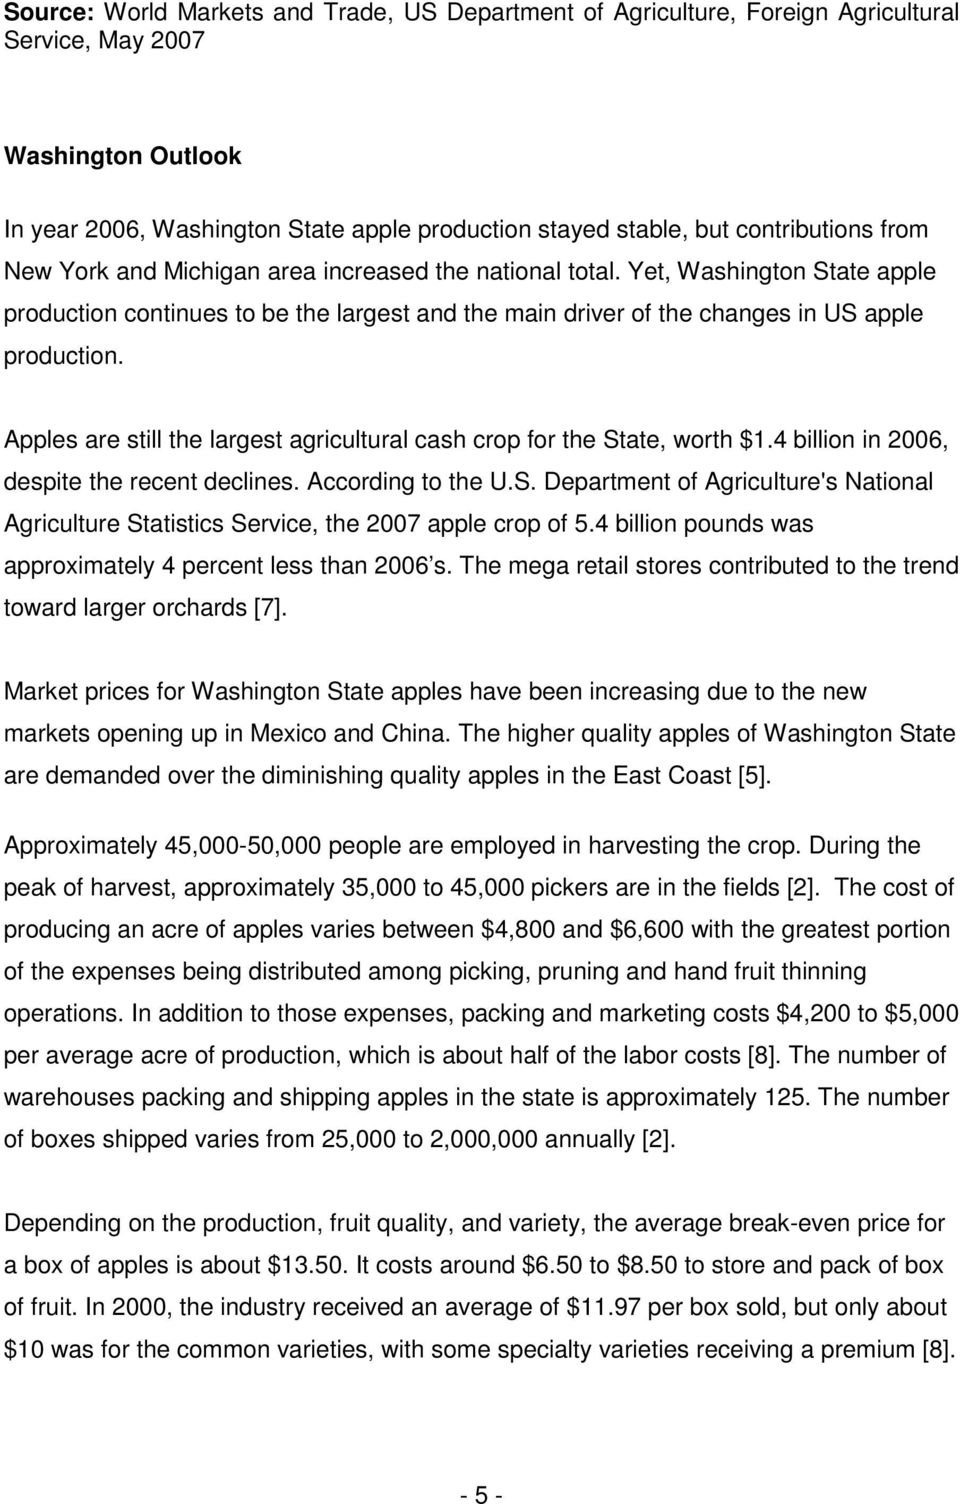 Yet, Washington State apple production continues to be the largest and the main driver of the changes in US apple production.